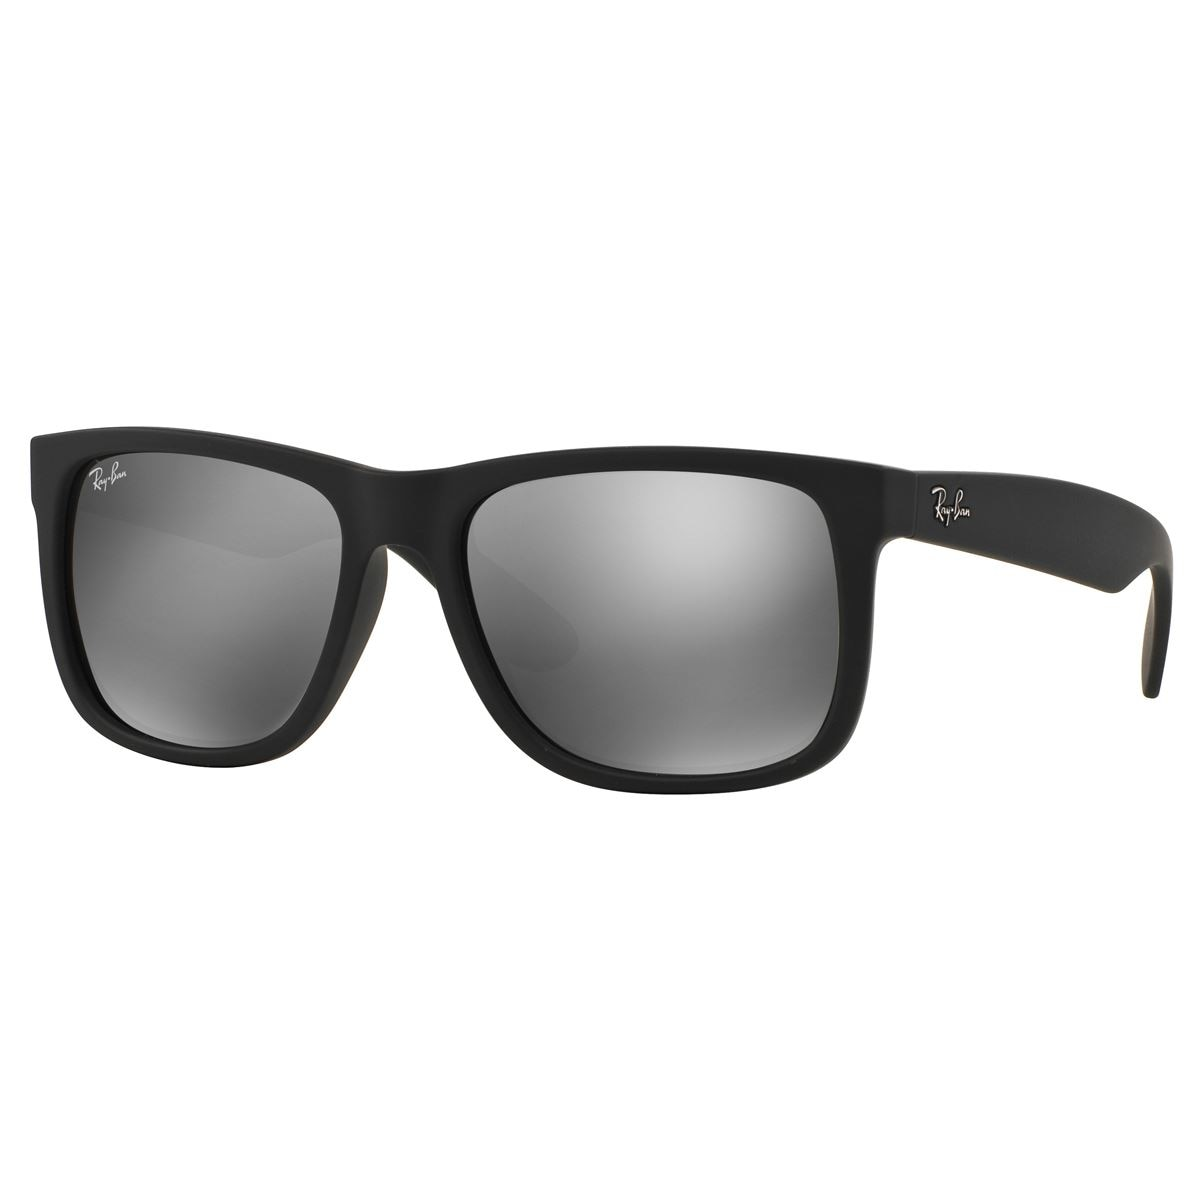 Solar Ray Ban 0rb4165 622/6g55 H